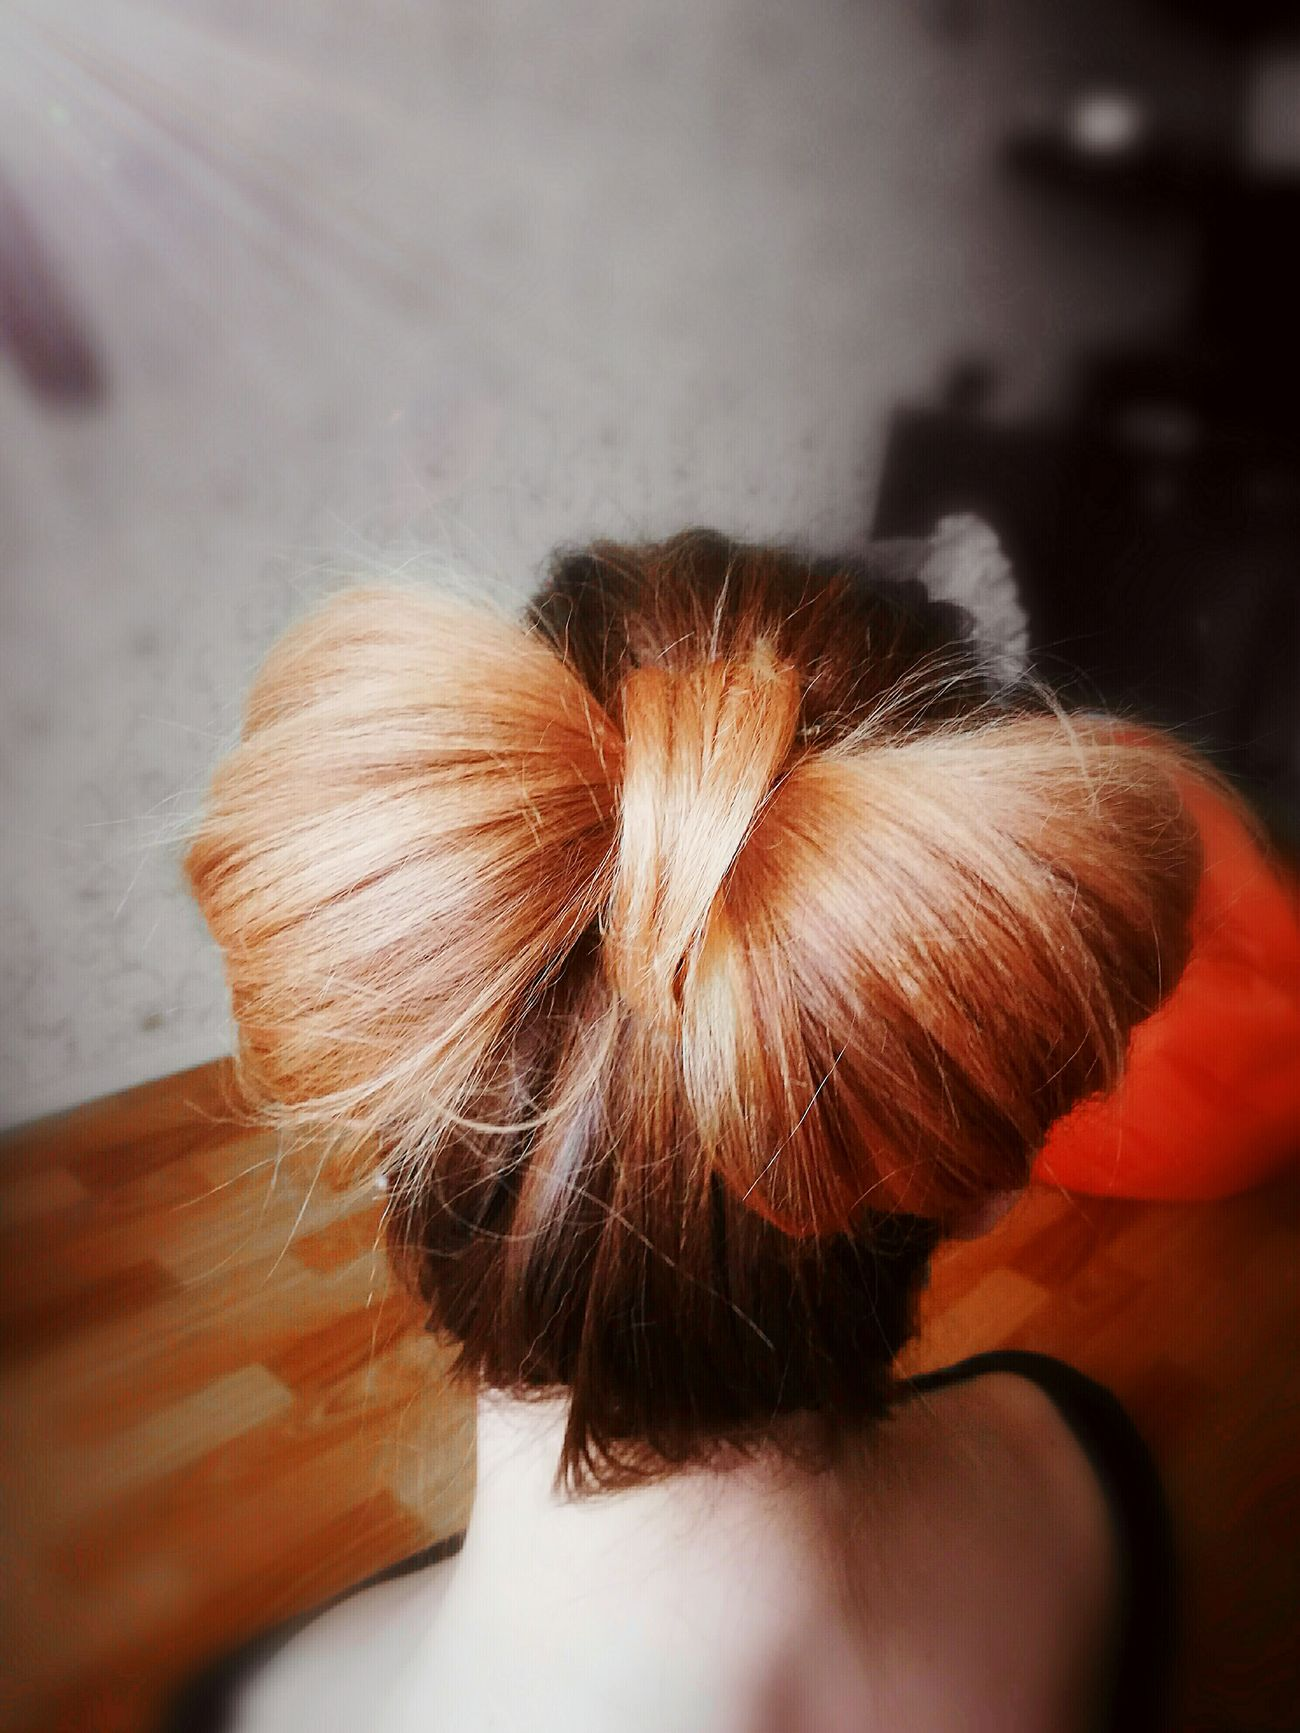 Expresshairstyle Selfmade Me:)